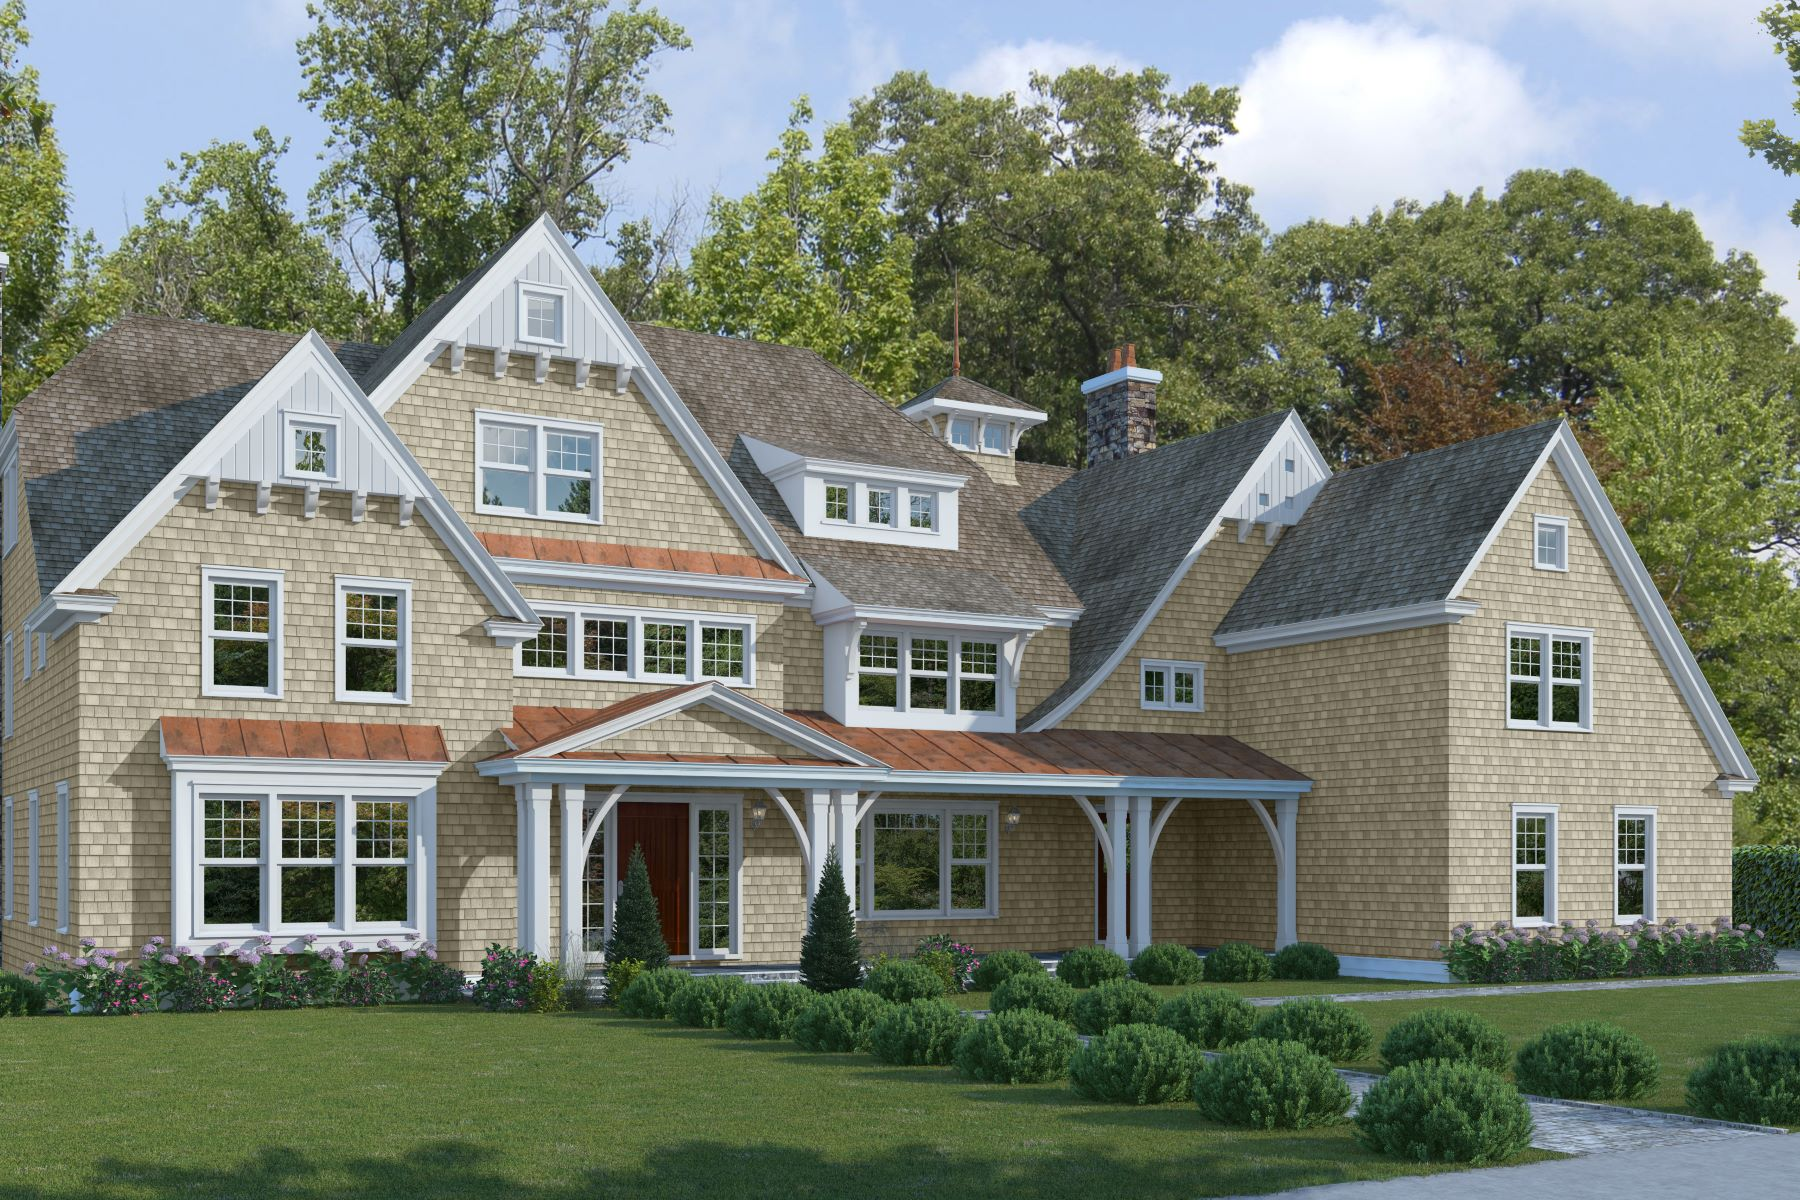 Casa Unifamiliar por un Venta en Extraordinary New Construction 729 Smith Ridge Road New Canaan, Connecticut 06840 Estados Unidos